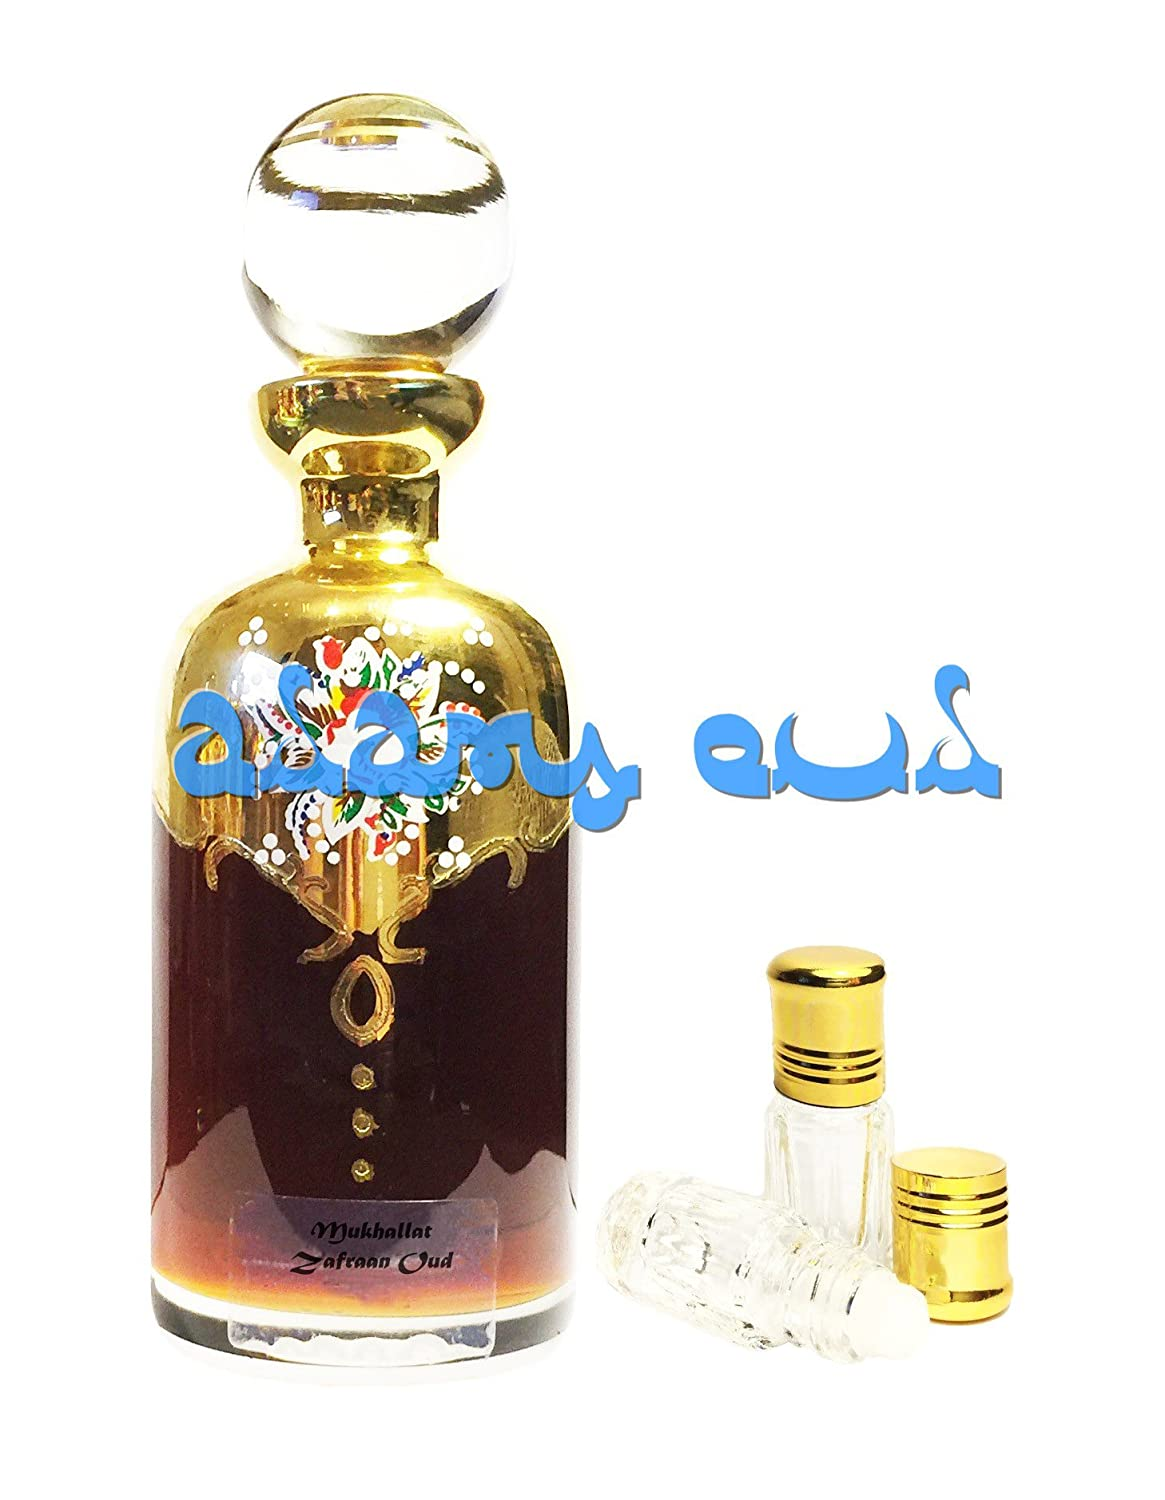 Mukhallat Zafraan Oud - Concentrated Oil Based Attar - Strong and Sweet Oudh Perfume (3ml) from Adam's Oud